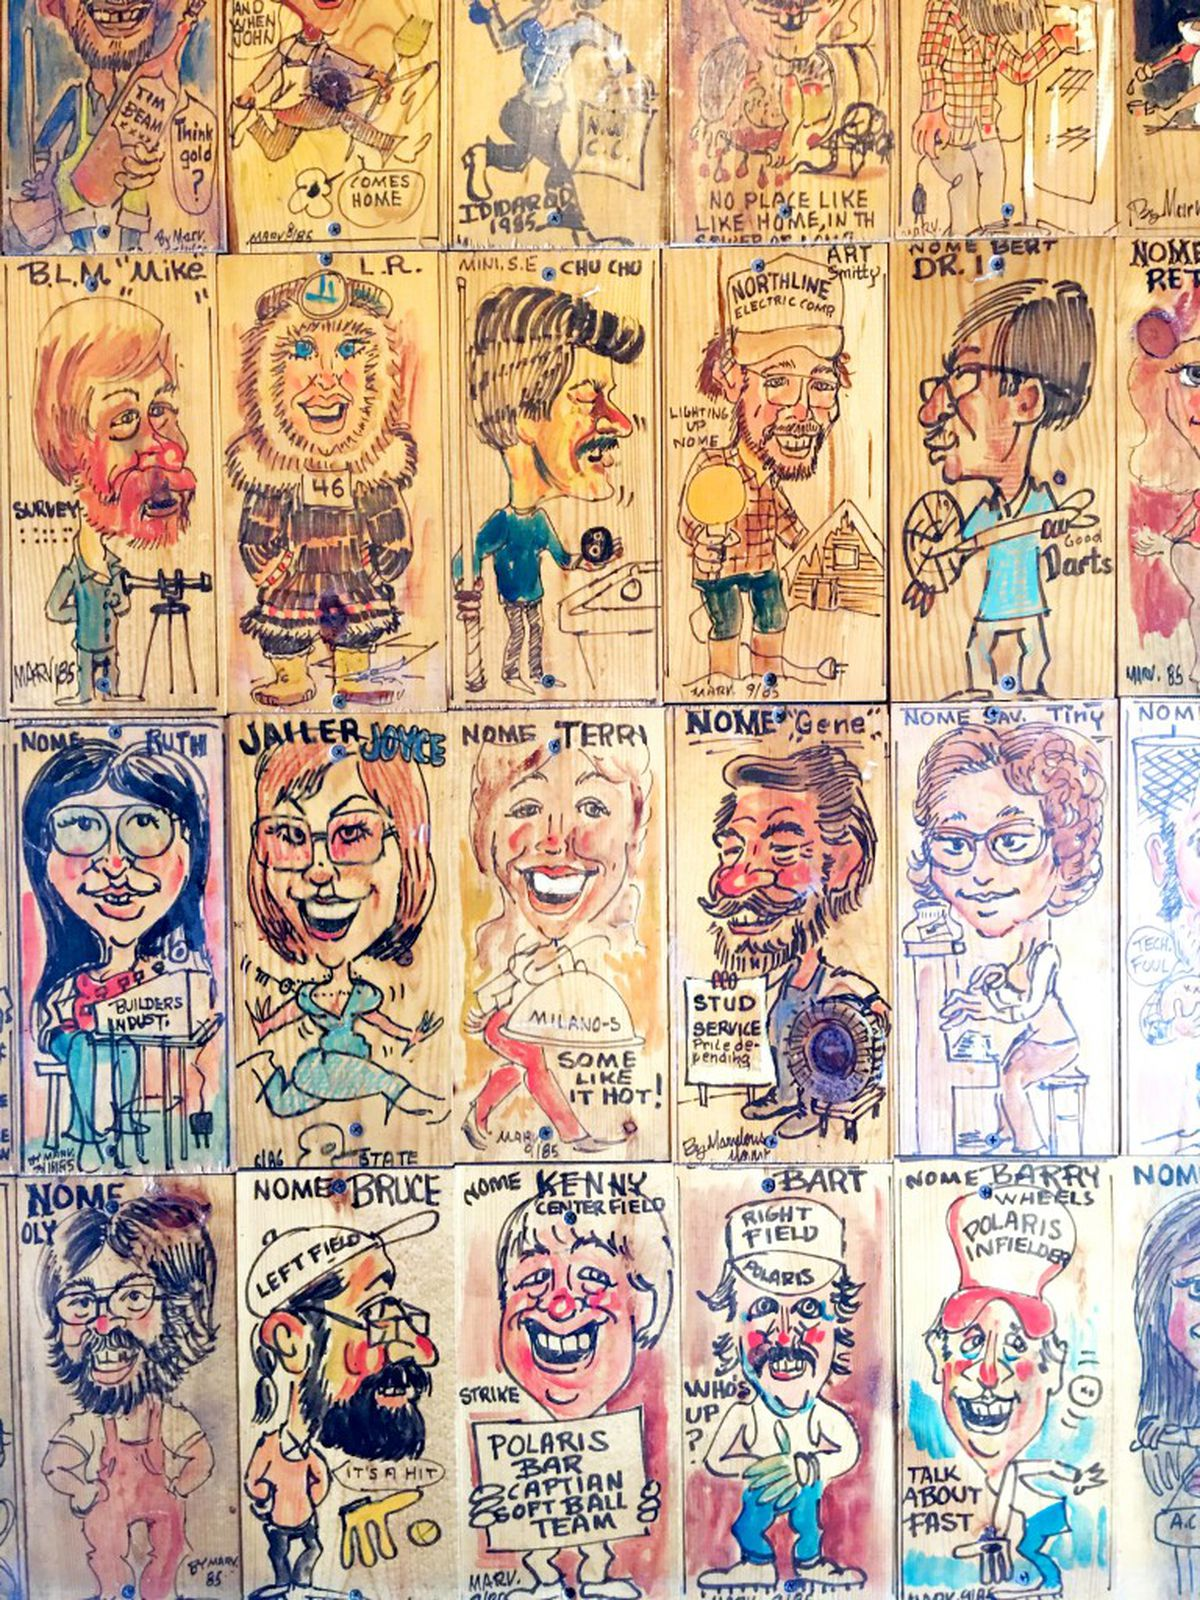 Art on the wall of the Polaris Bar in Nome, Alaska (Photo by Kirsten Swann / Alaska Dispatch News)